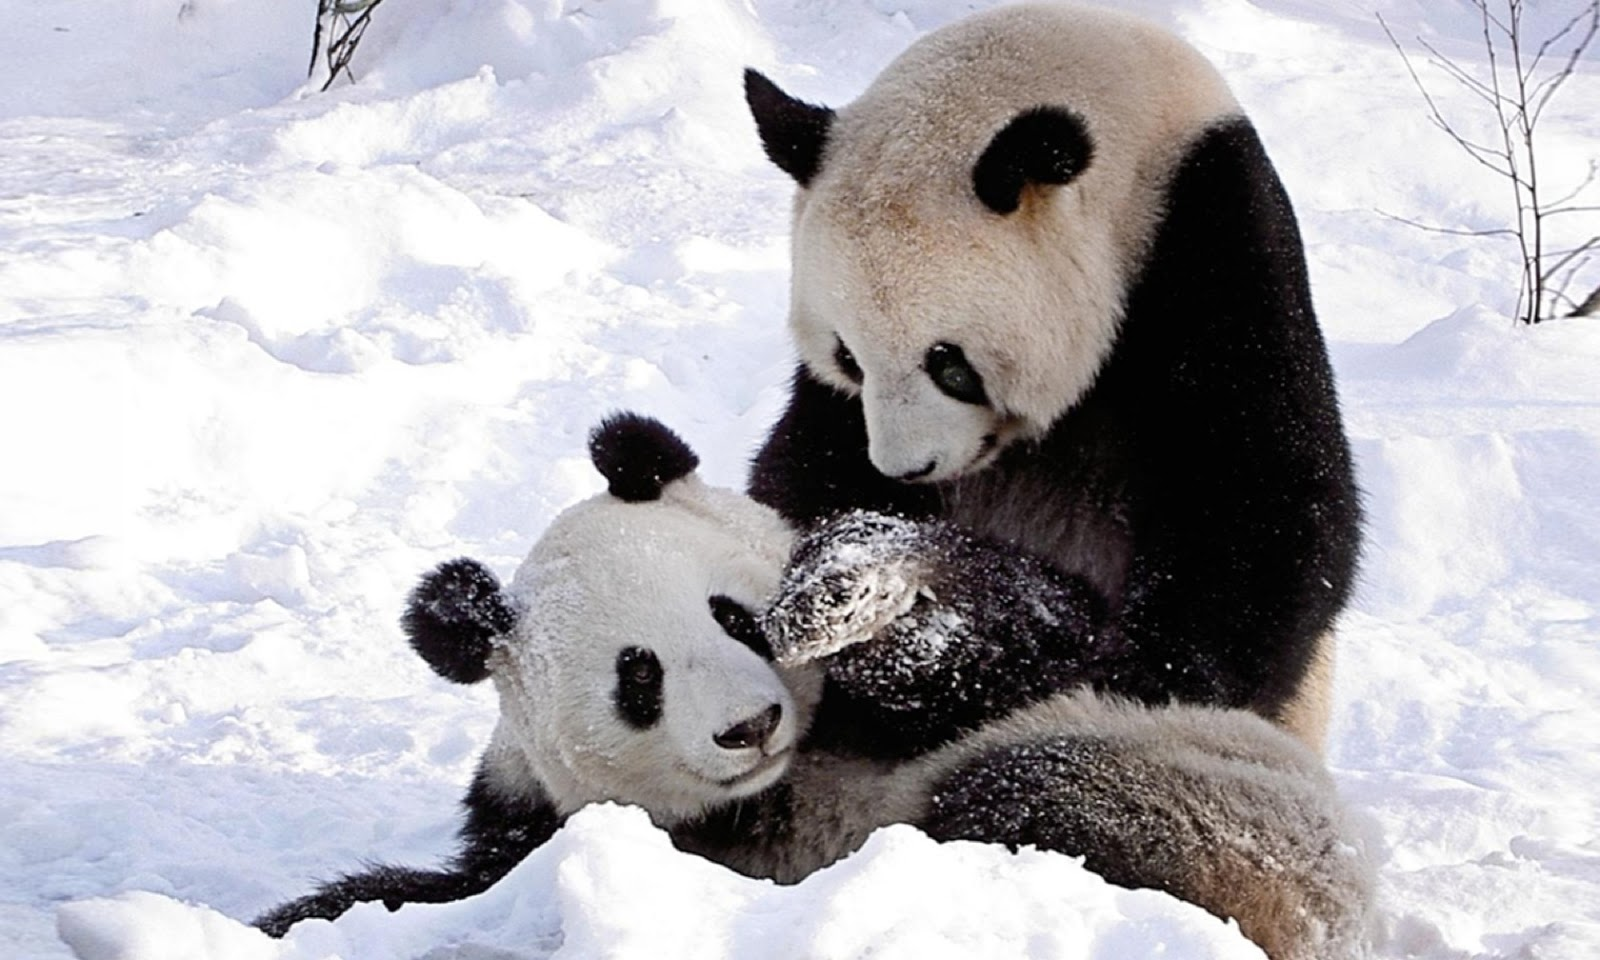 panda pictures hd wallpapers - photo #28